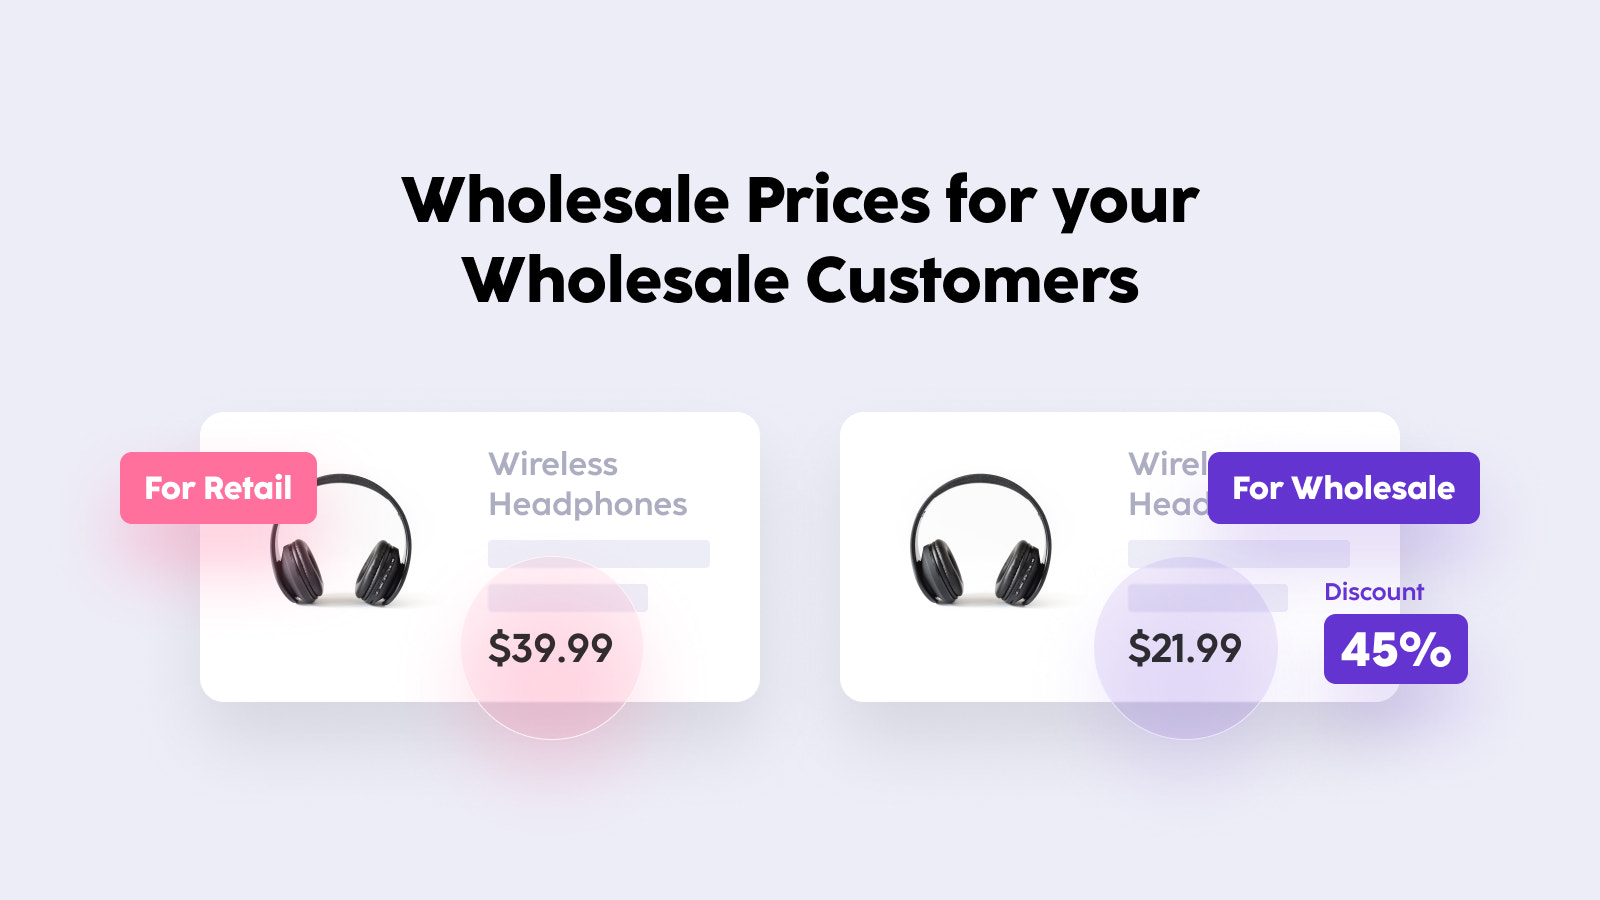 Wholesale Prices for your Wholesale Customers